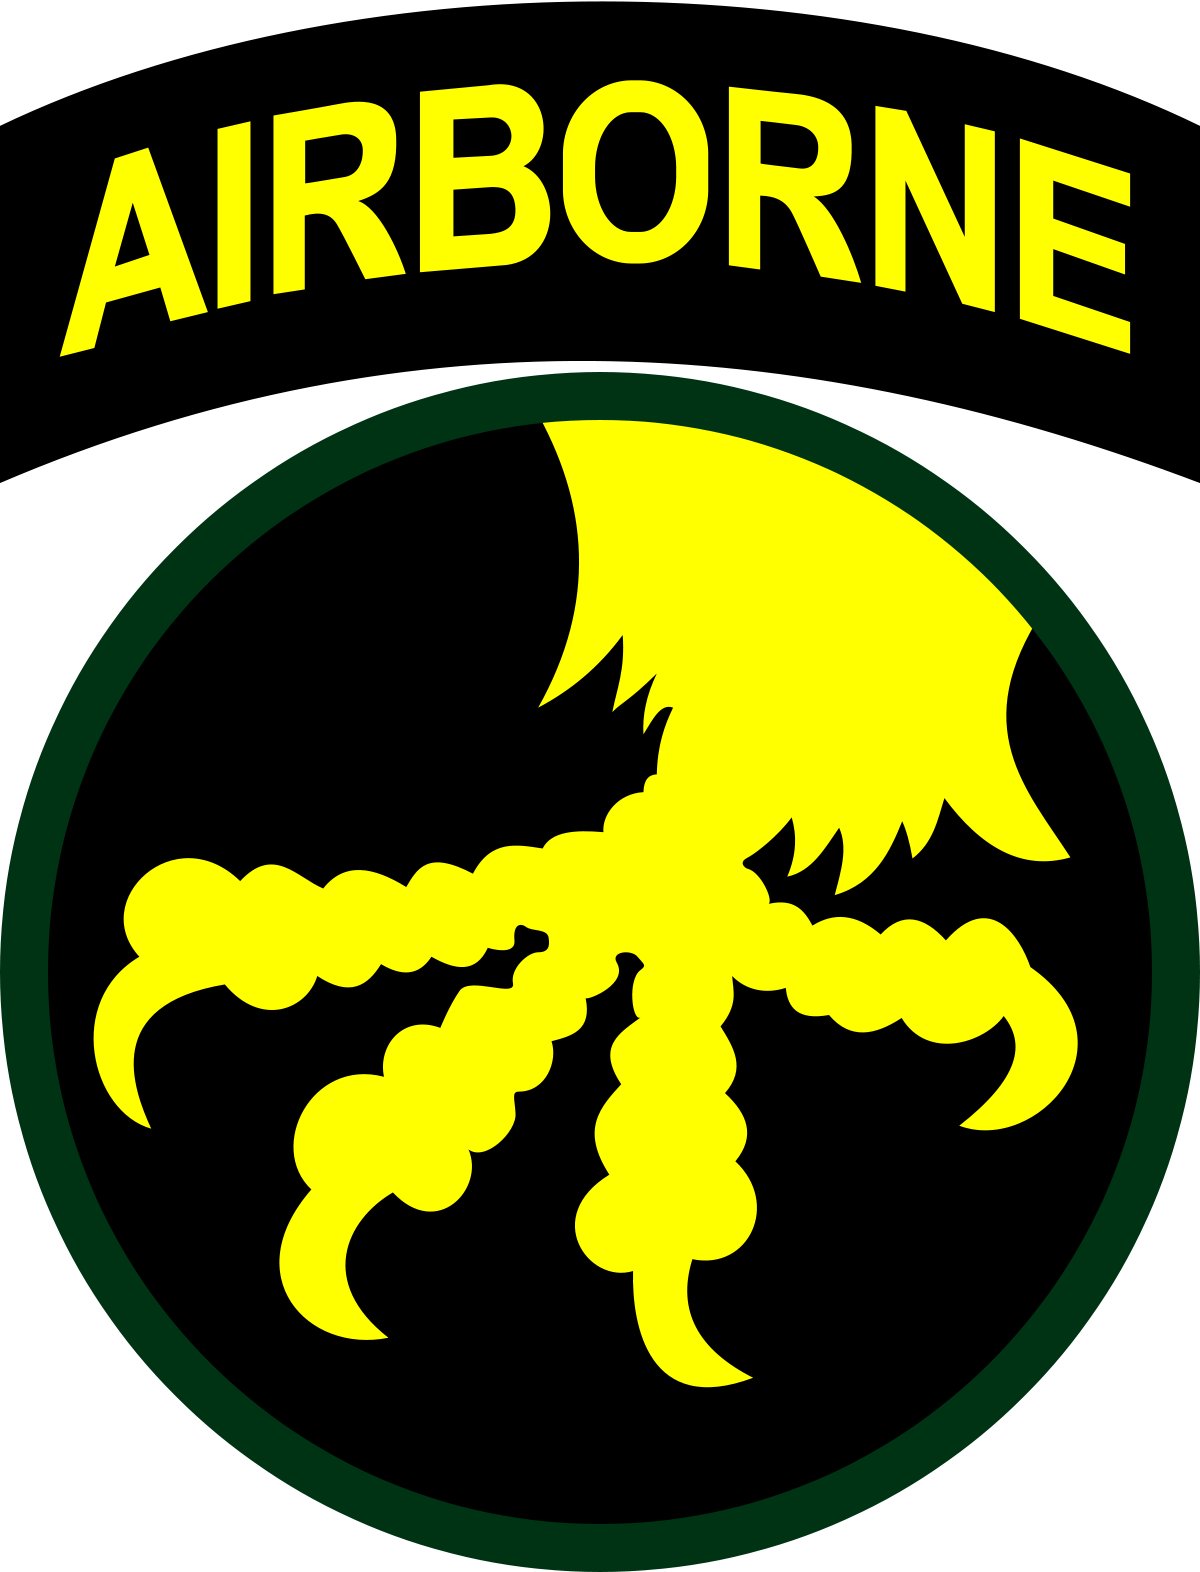 Airborne military patch clipart vector download 17th Airborne Division (United States) - Wikipedia vector download